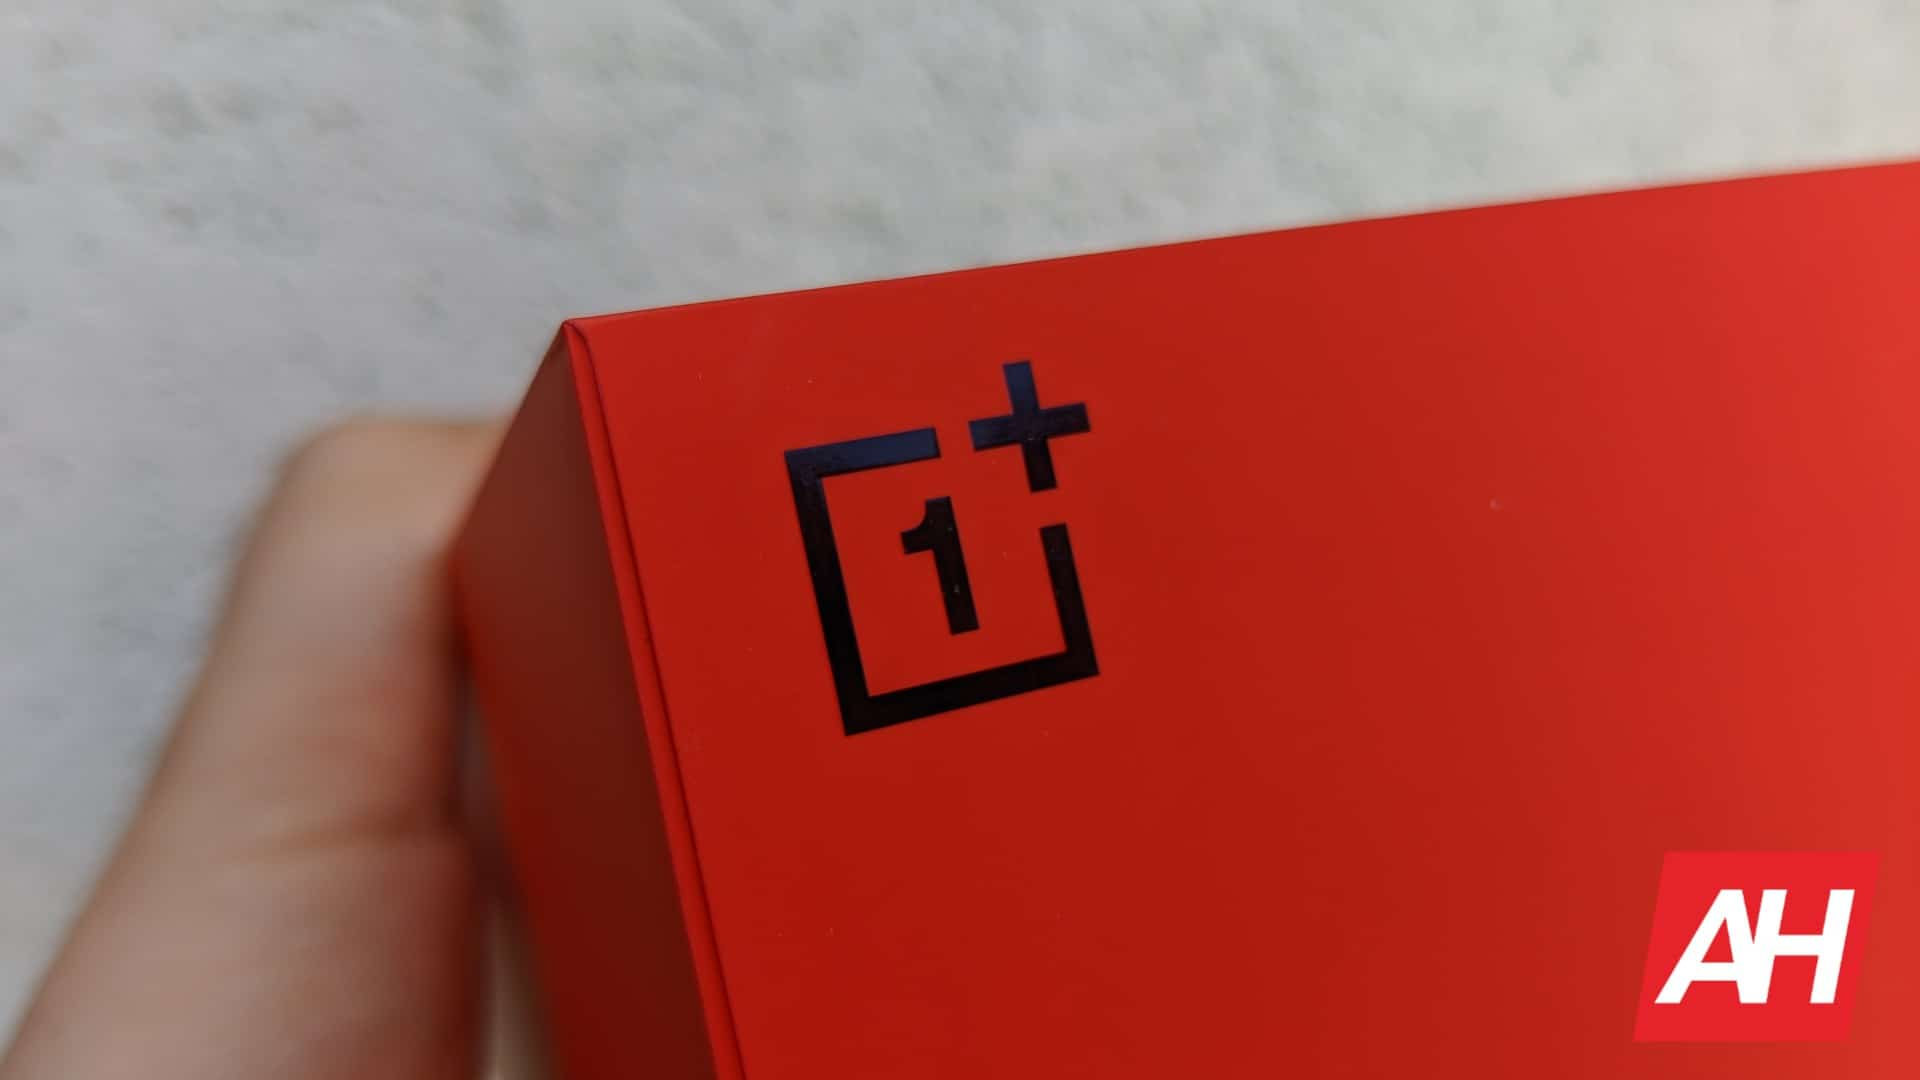 Sadly, There Will Be No Oneplus 9T This Year